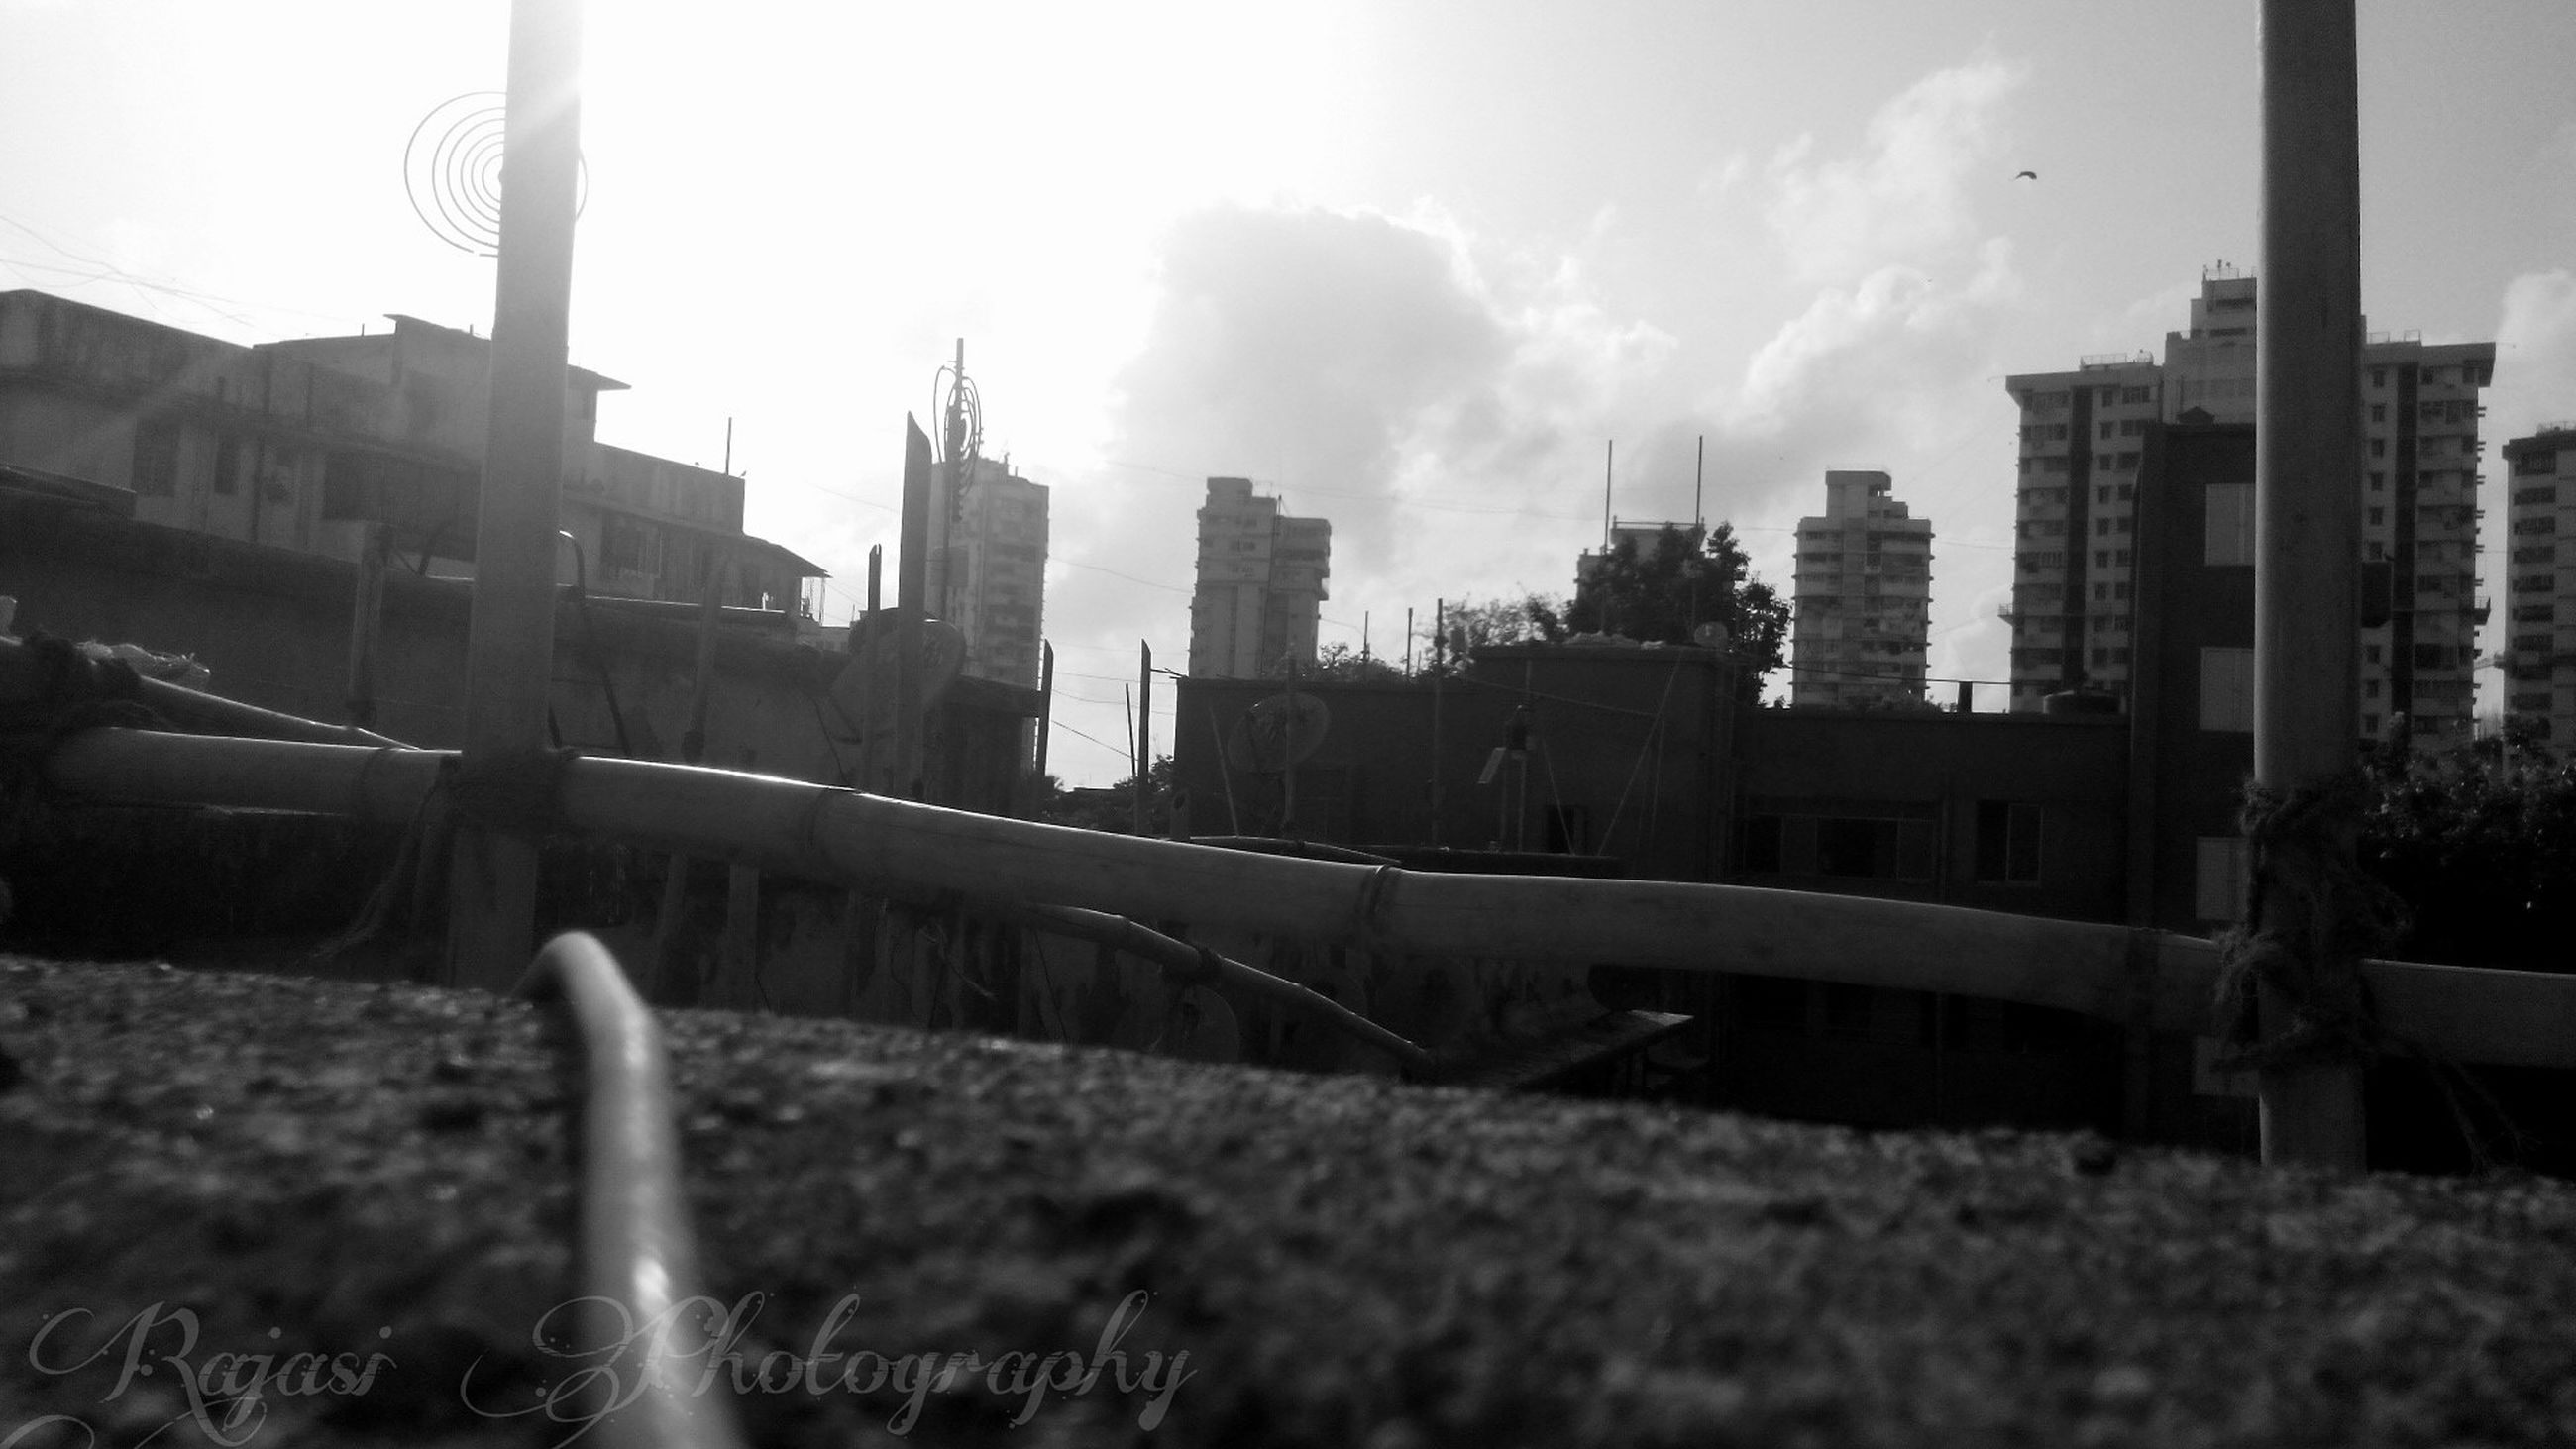 building exterior, architecture, built structure, sky, city, transportation, river, mode of transport, water, nautical vessel, cloud - sky, building, outdoors, no people, grass, cityscape, day, bridge - man made structure, car, sunlight